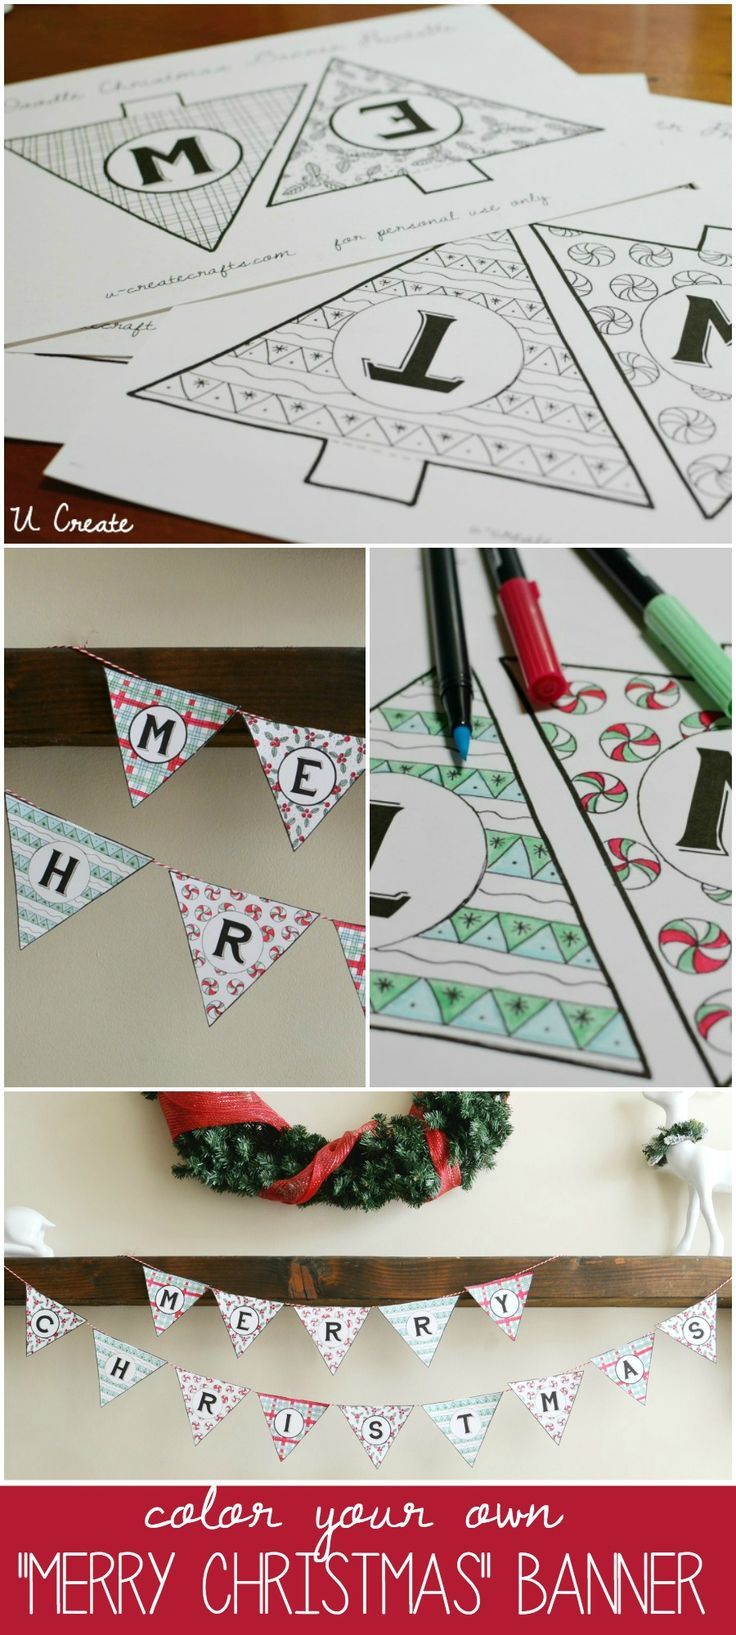 Free coloring pages epiphany -  Merry Christmas Banner Coloring Pages By U Create